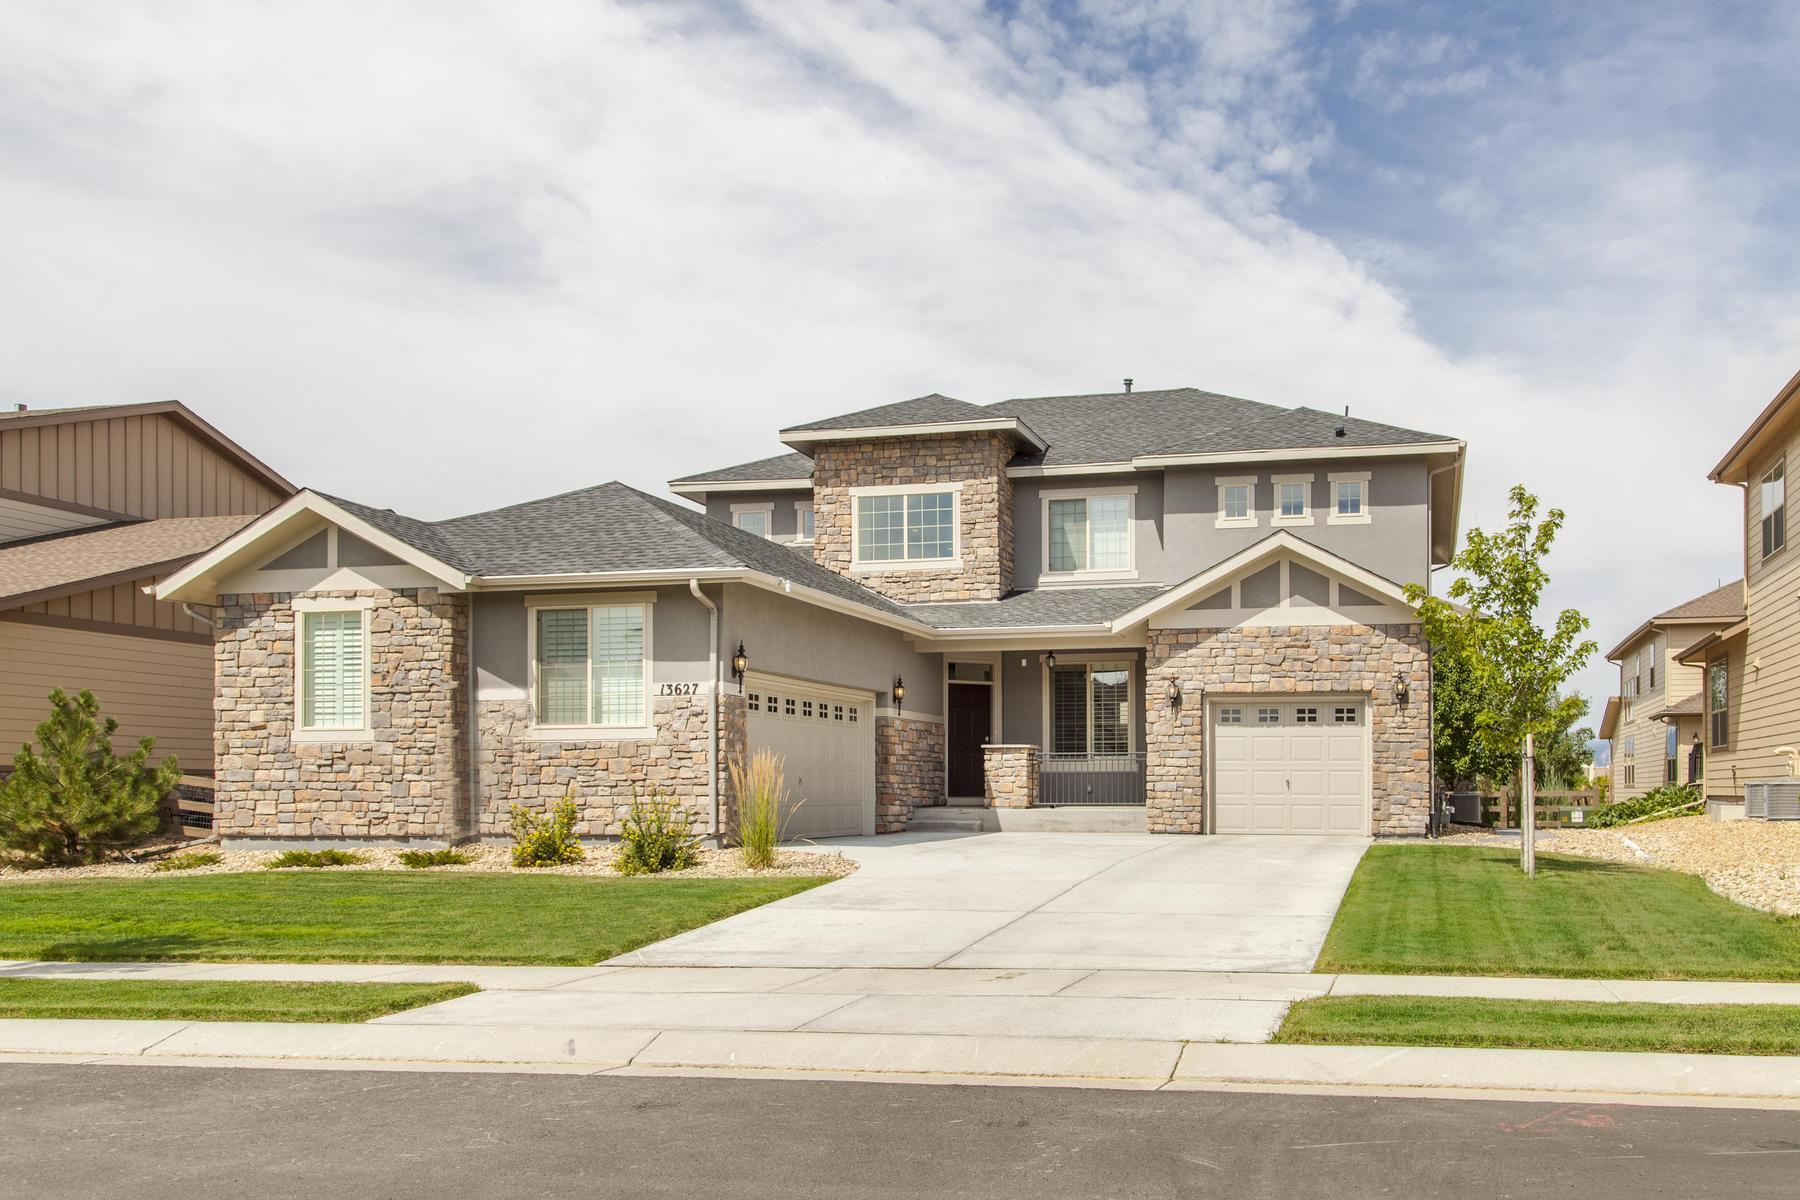 Single Family Home for Active at 13627 Pecos Loop 13627 Pecos Loop Broomfield, Colorado 80023 United States